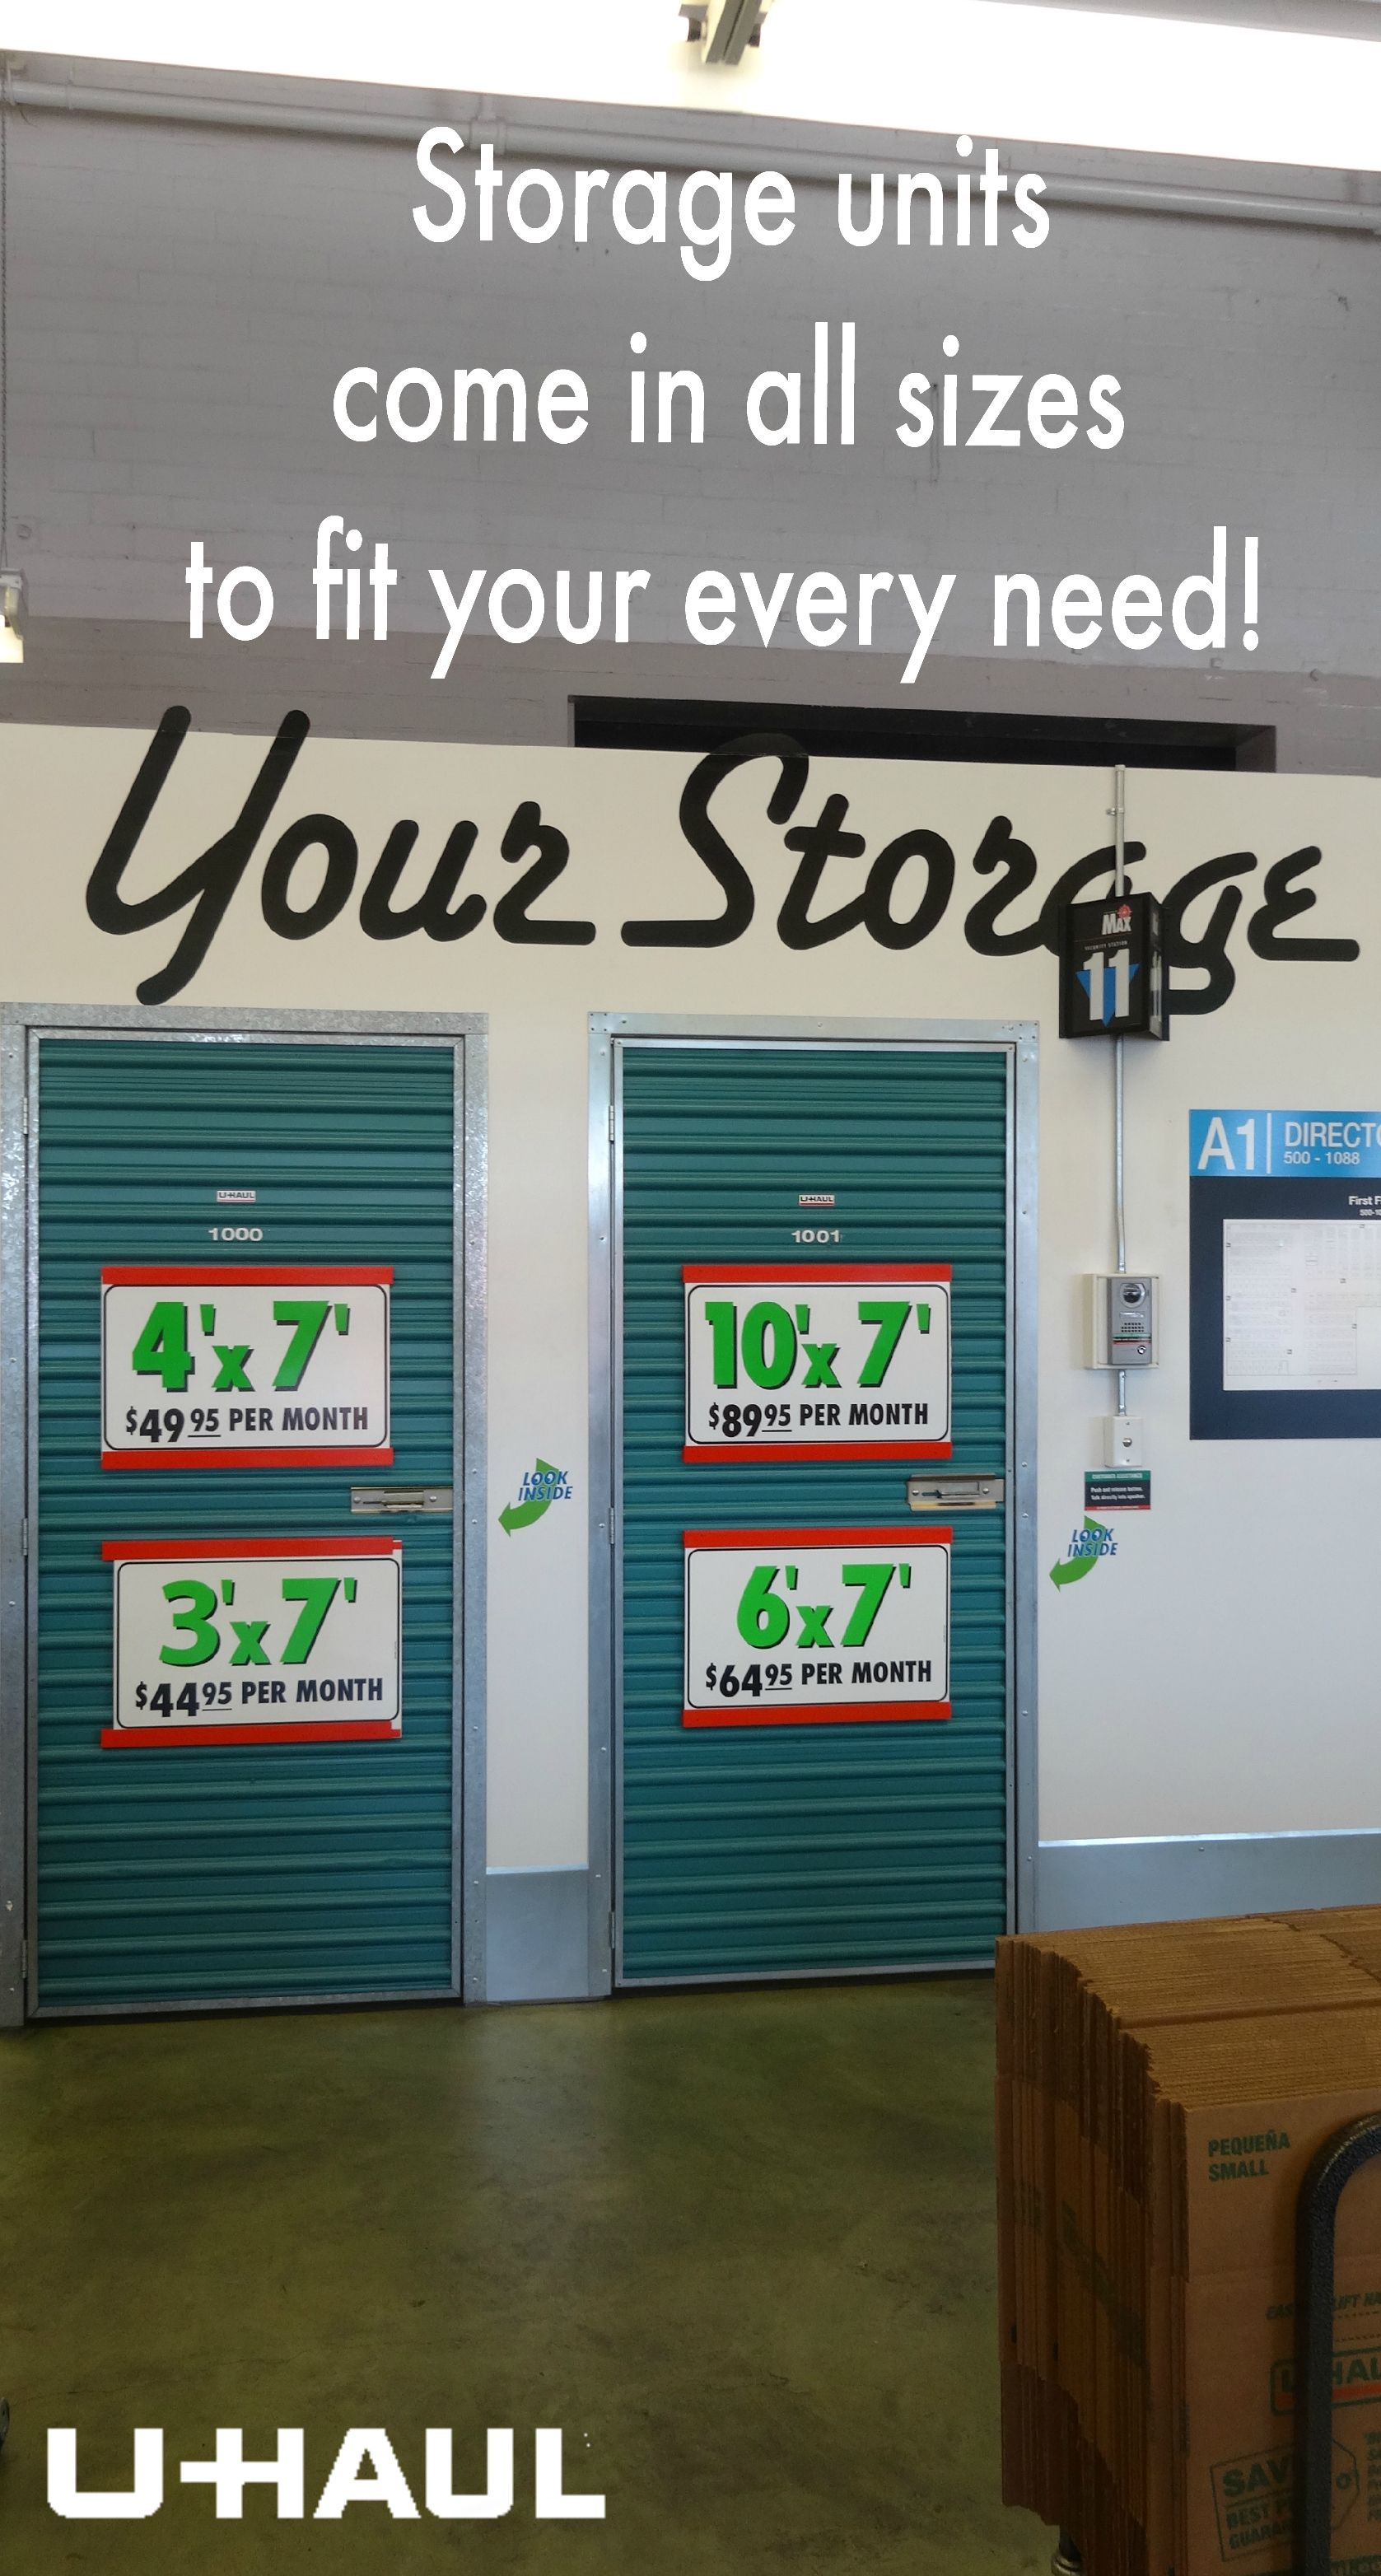 Pin By Jw Costner On Storage Ideas Self Storage Storage Unit Self Storage Units